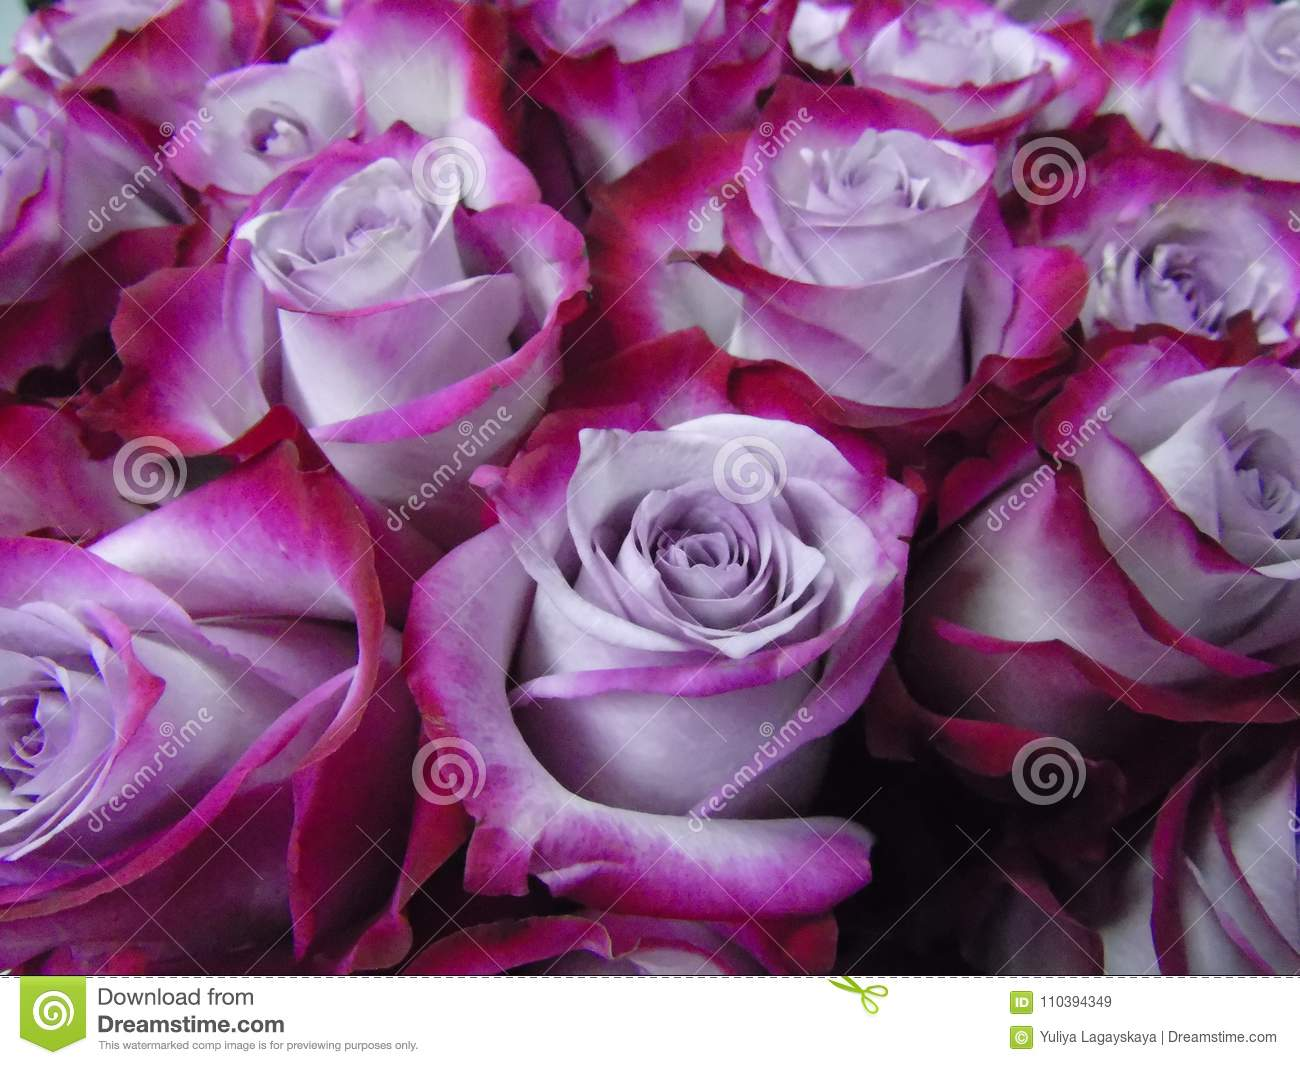 Two Tone Lavender Lily and Beauty Rose (LS1871) |Two Tone Lavender Roses